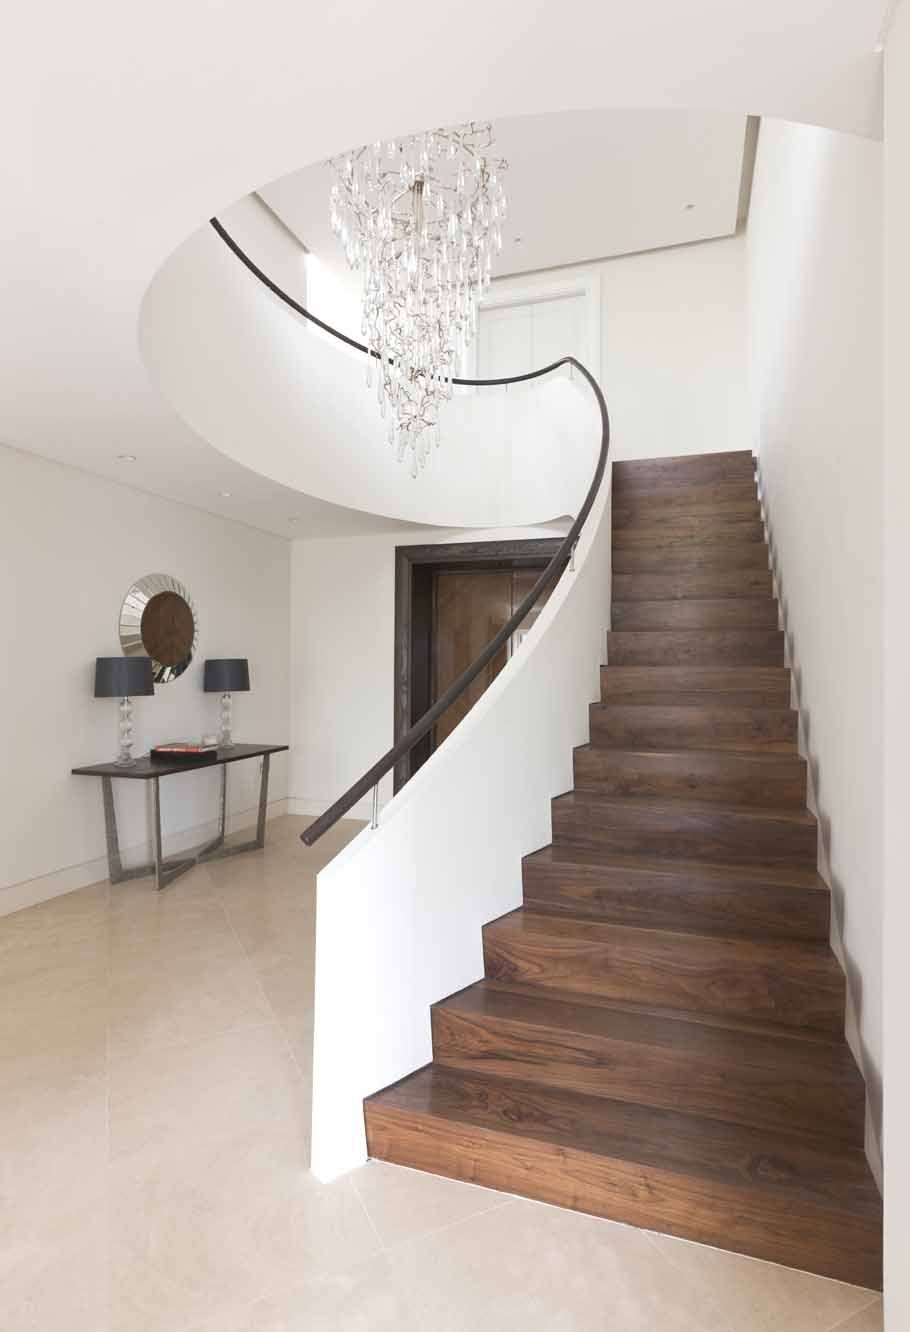 Contemporary Staircase Design Ideas Modern Living Room Interior   Stairs To Second Floor Design   Bathroom Next   Space Saving   Square Shaped   Kitchen   Stairway